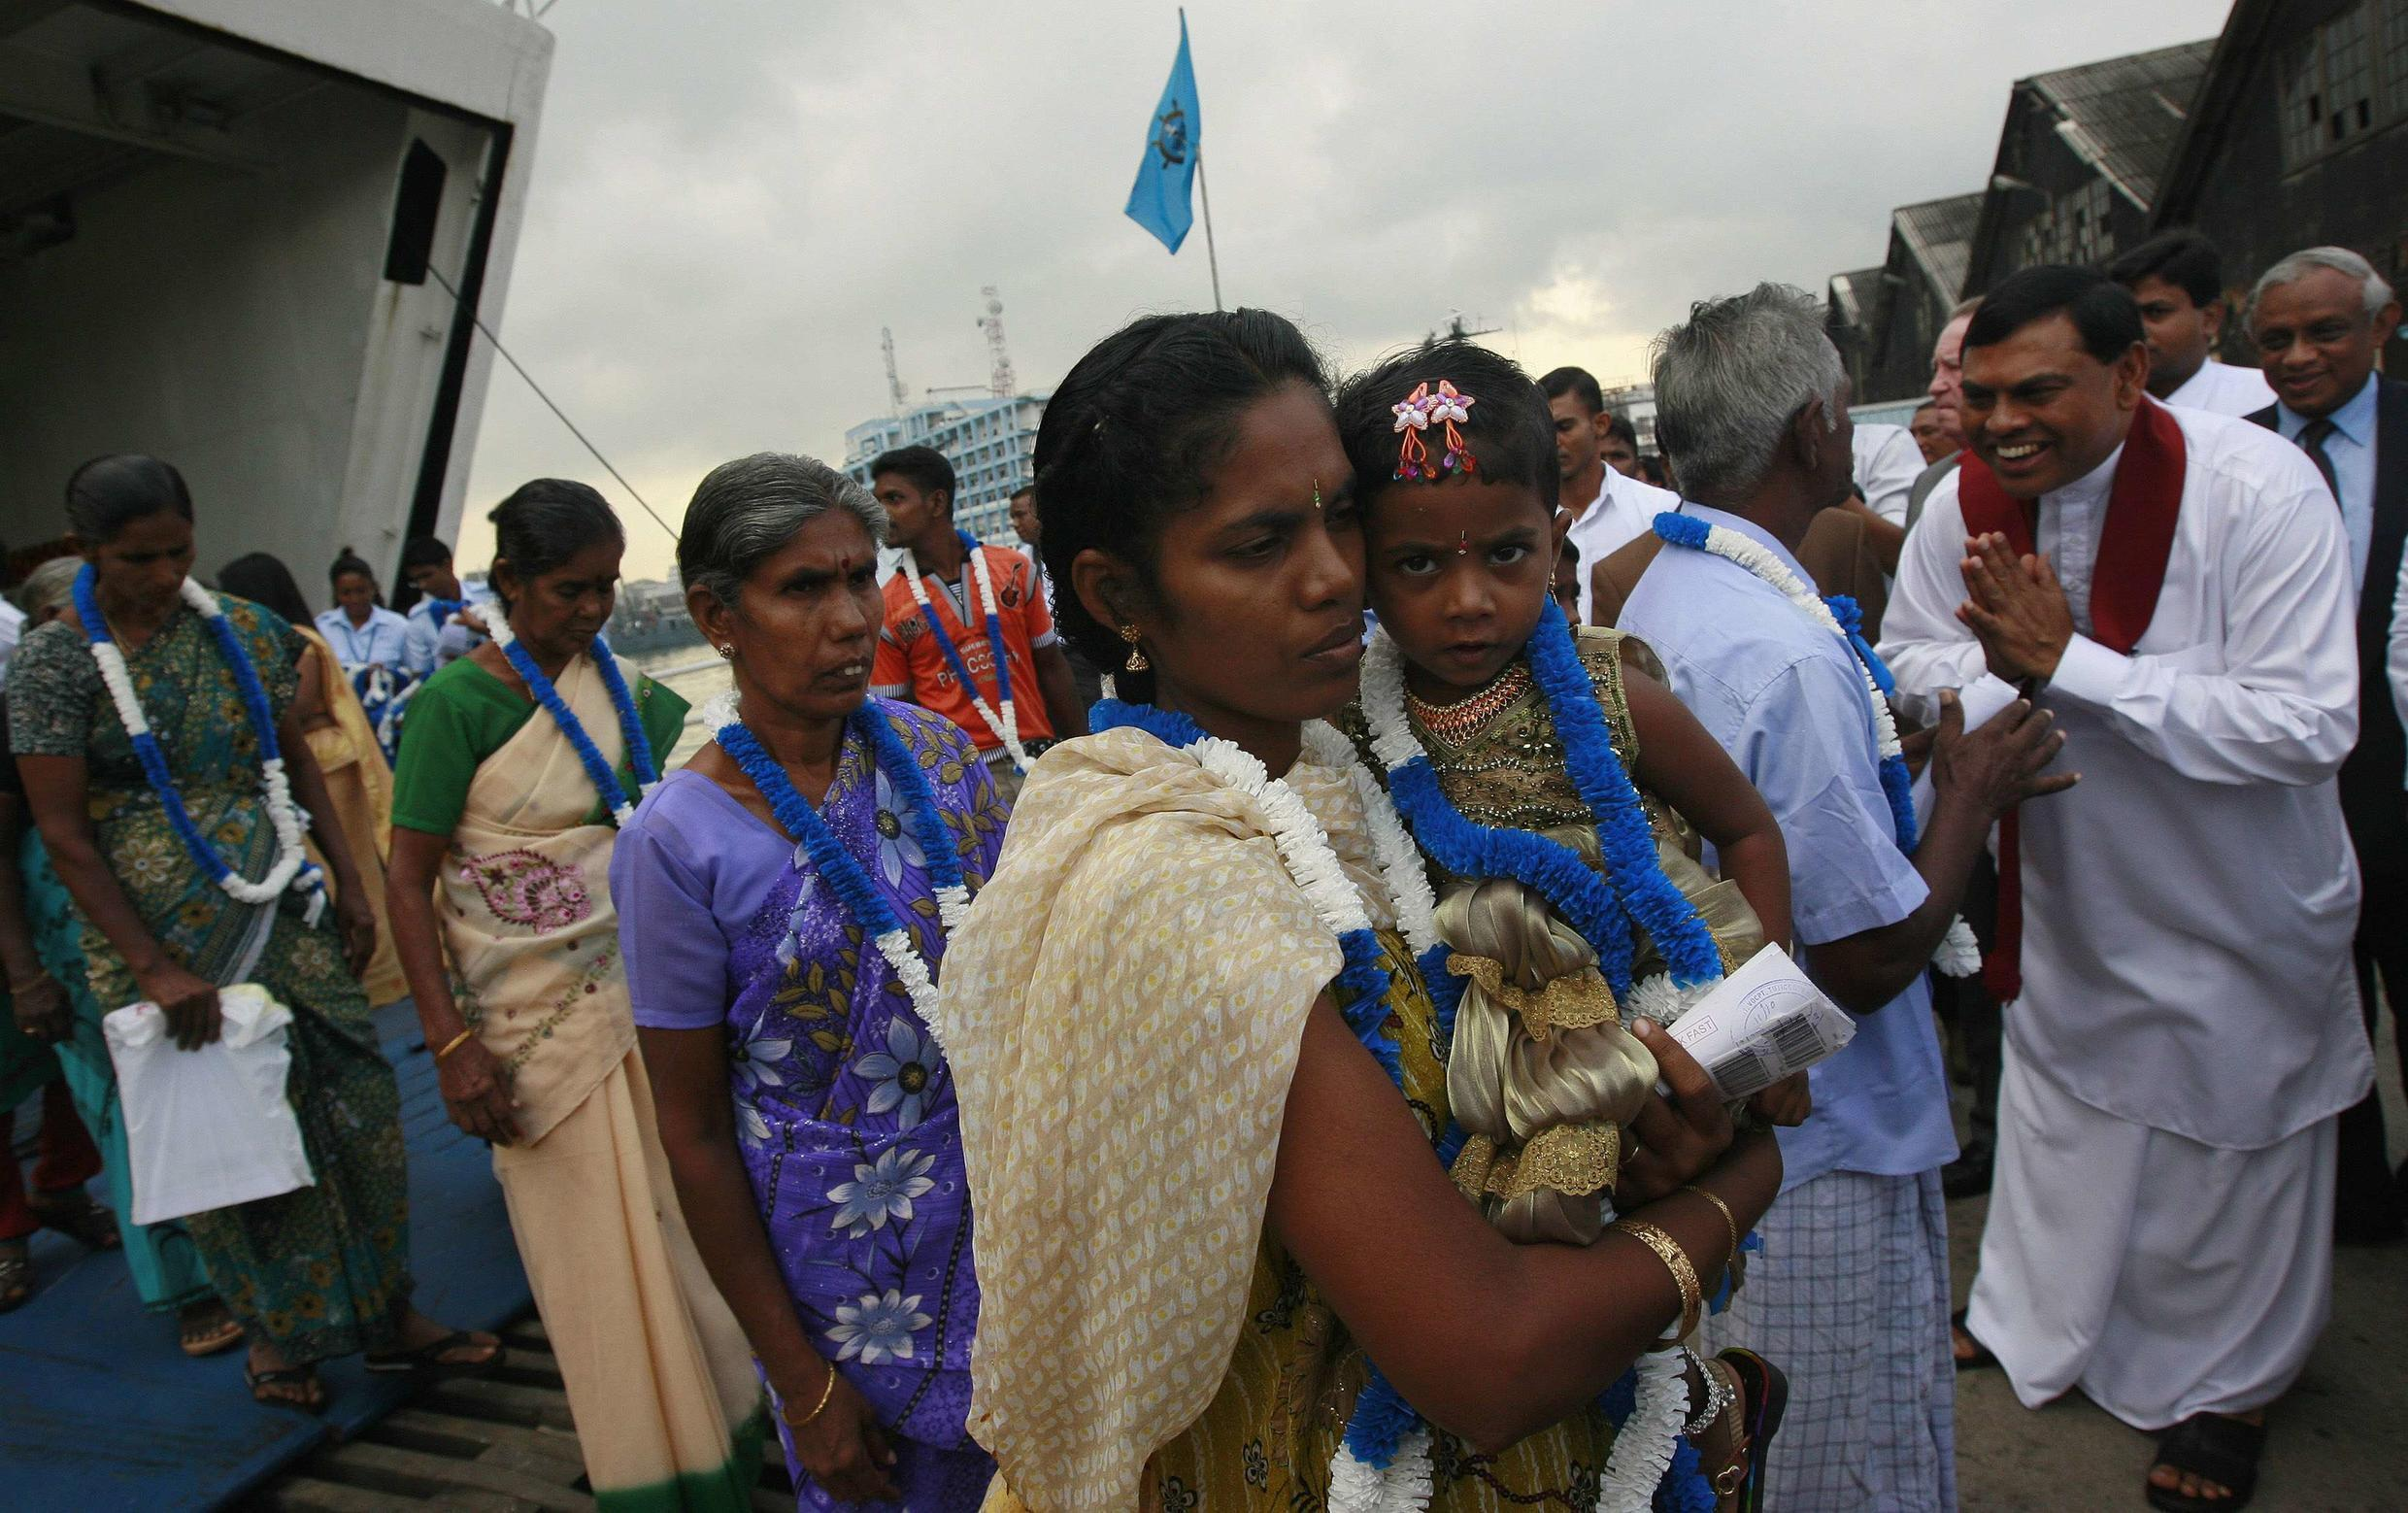 An ethnic minority Tamil woman arrives with her daughter to go to her native village